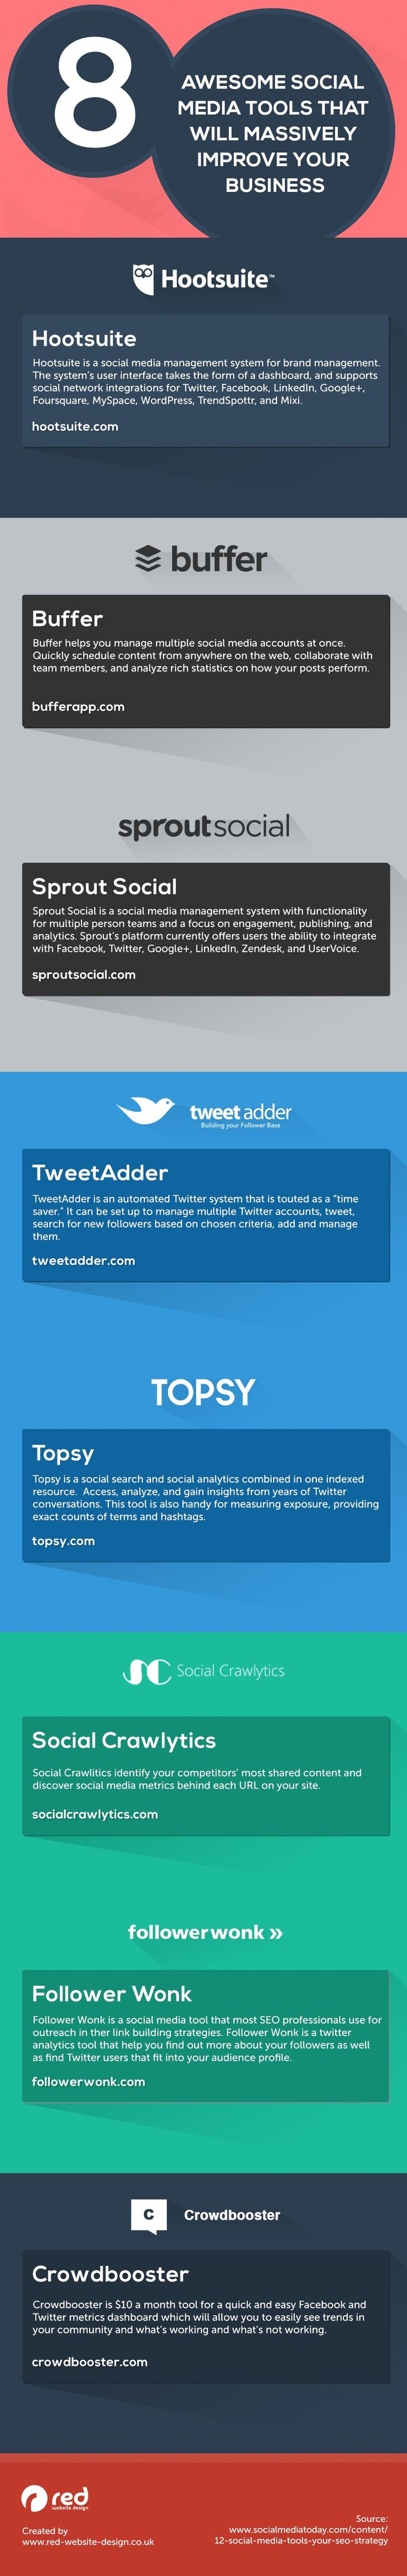 Awesome Social Media Tools That Will Massively Improve Your Business - #infographic #socialmedia